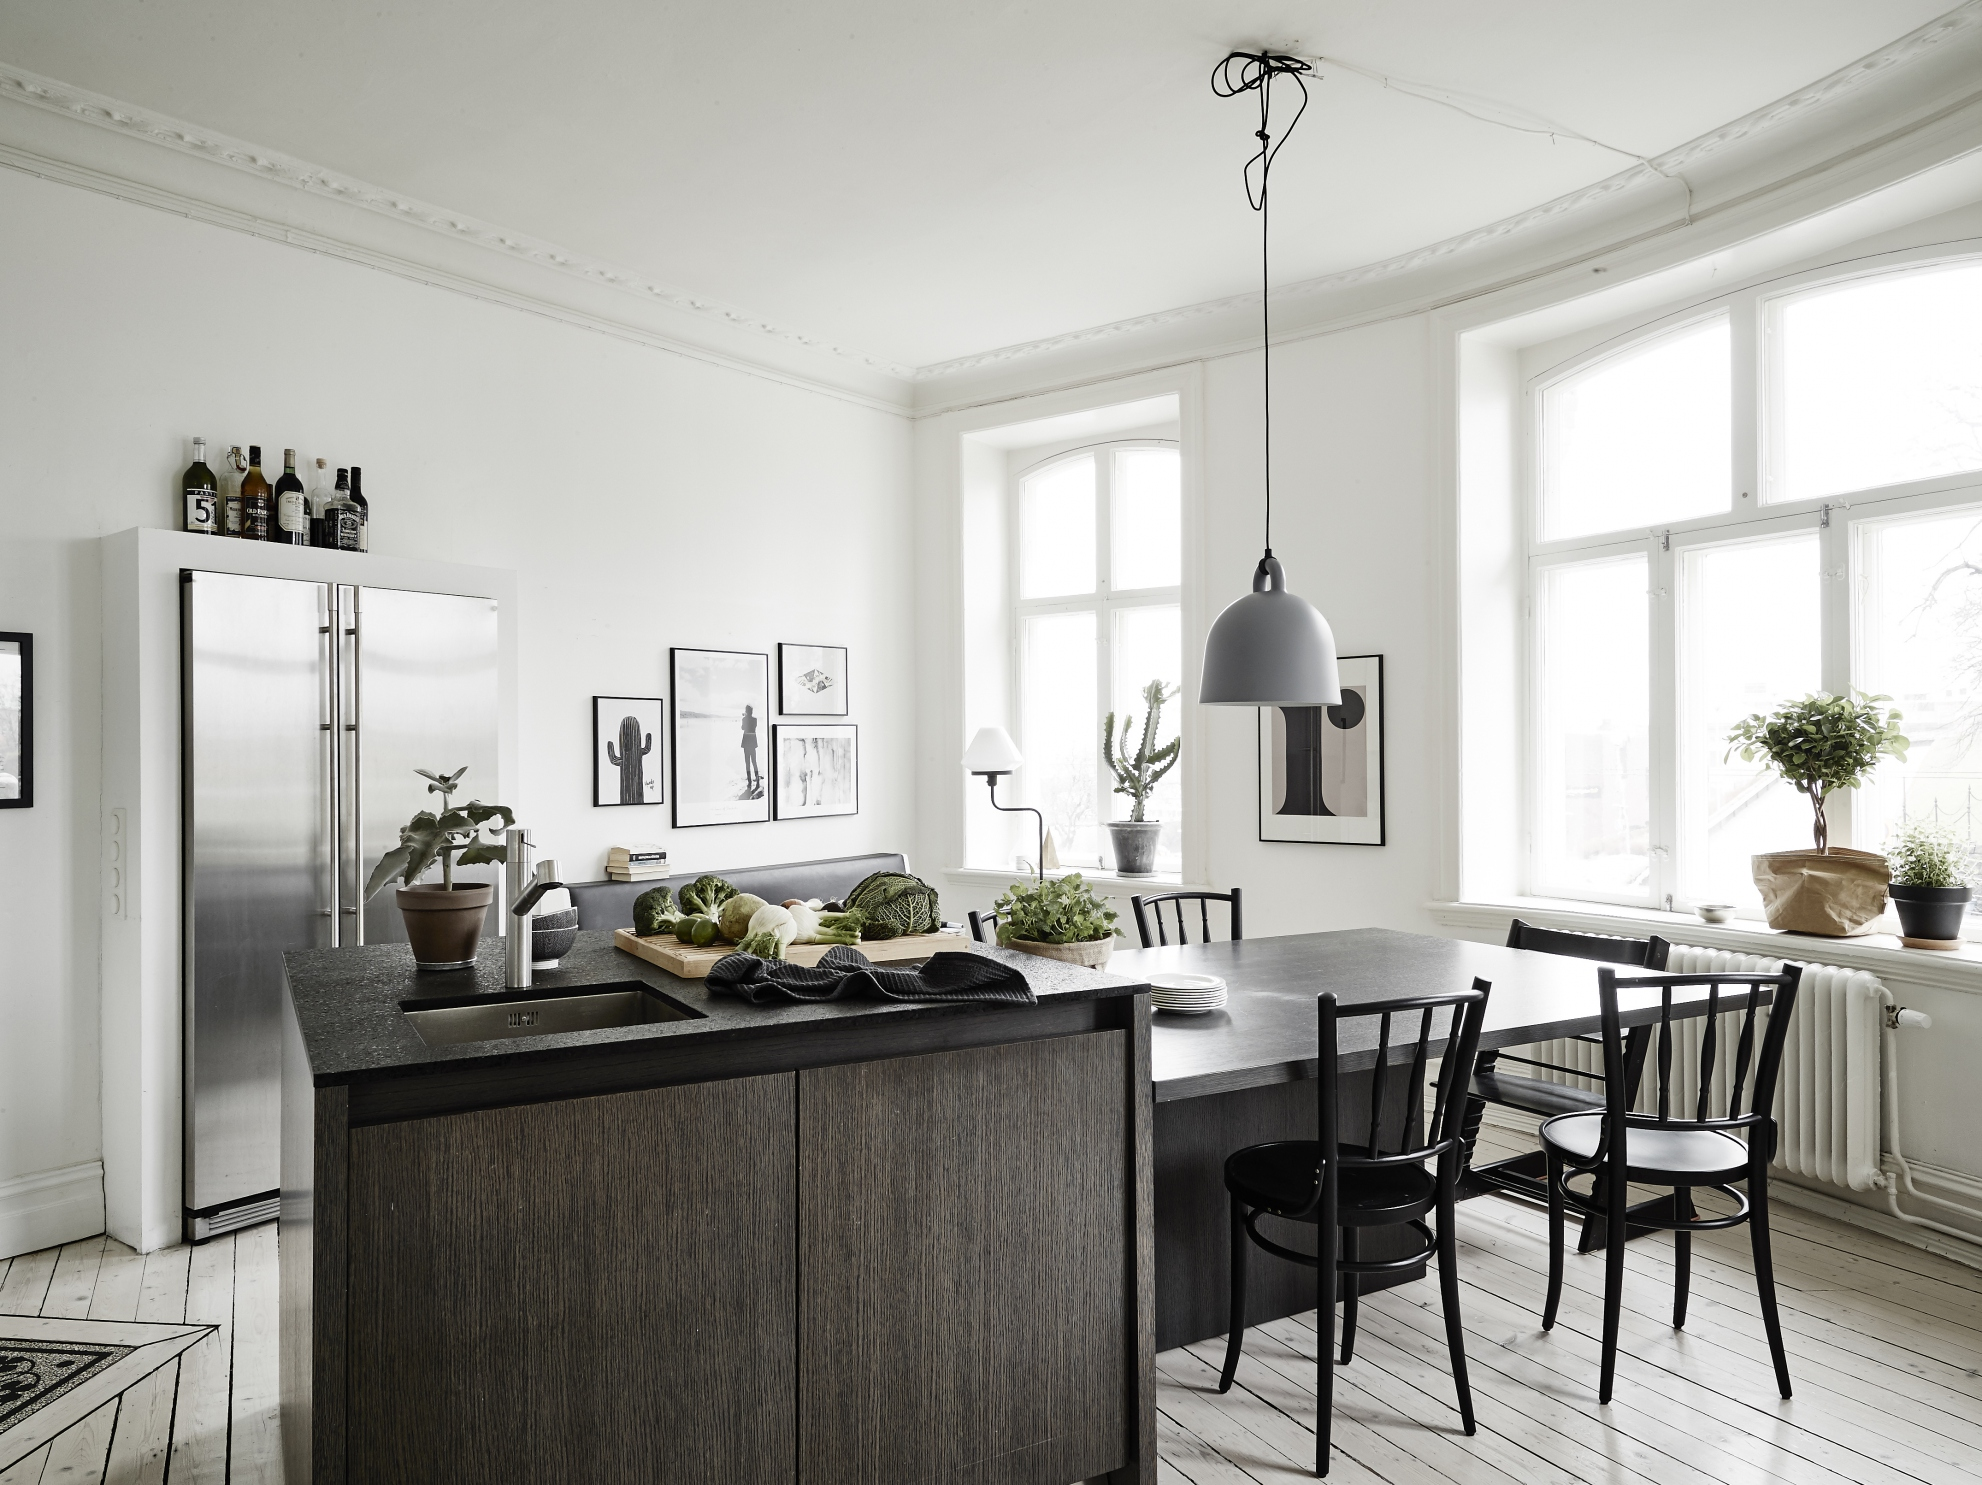 Small Apartment With A Big Kitchen Island   Via Cocolapinedesign.com ...